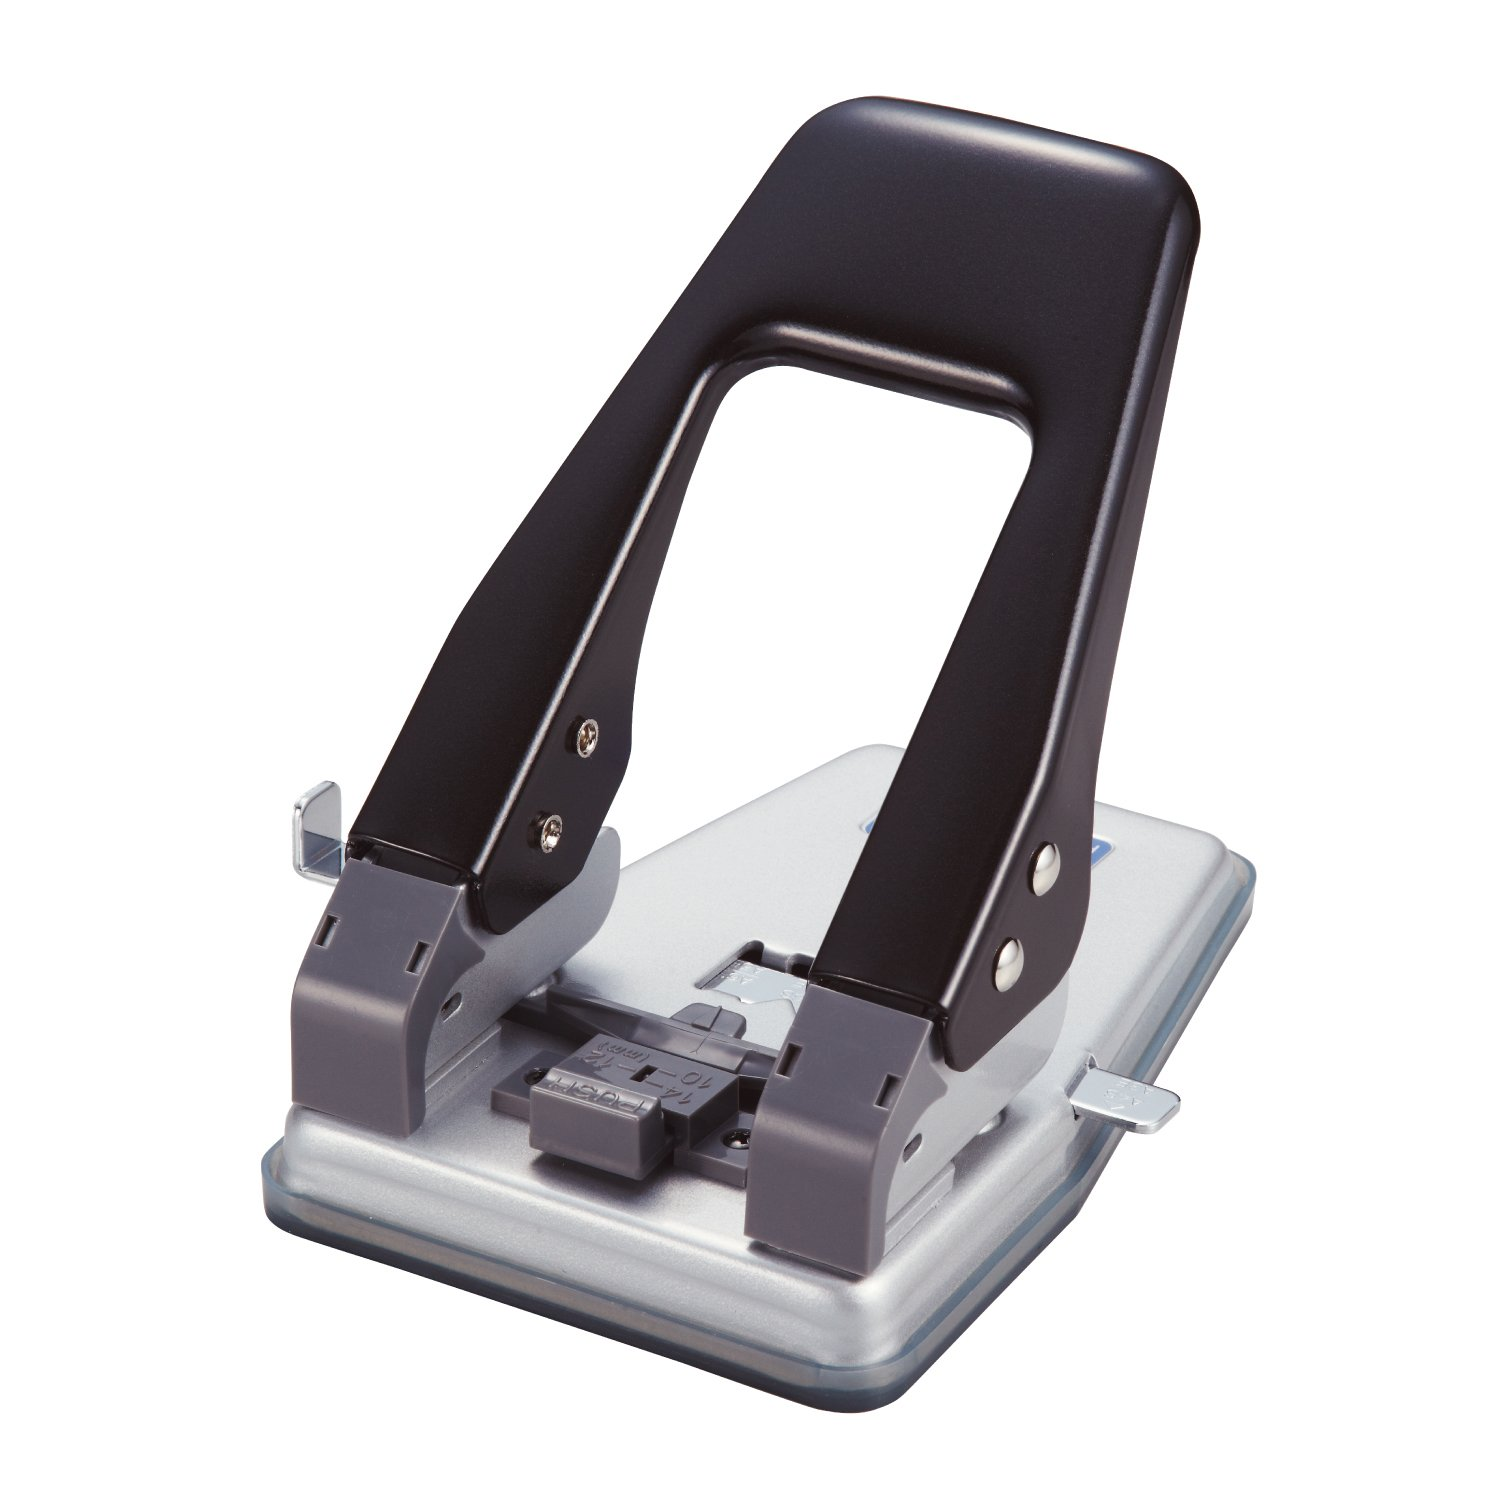 Open Industrial 2-hole punch black PU-80N-BK (japan import)